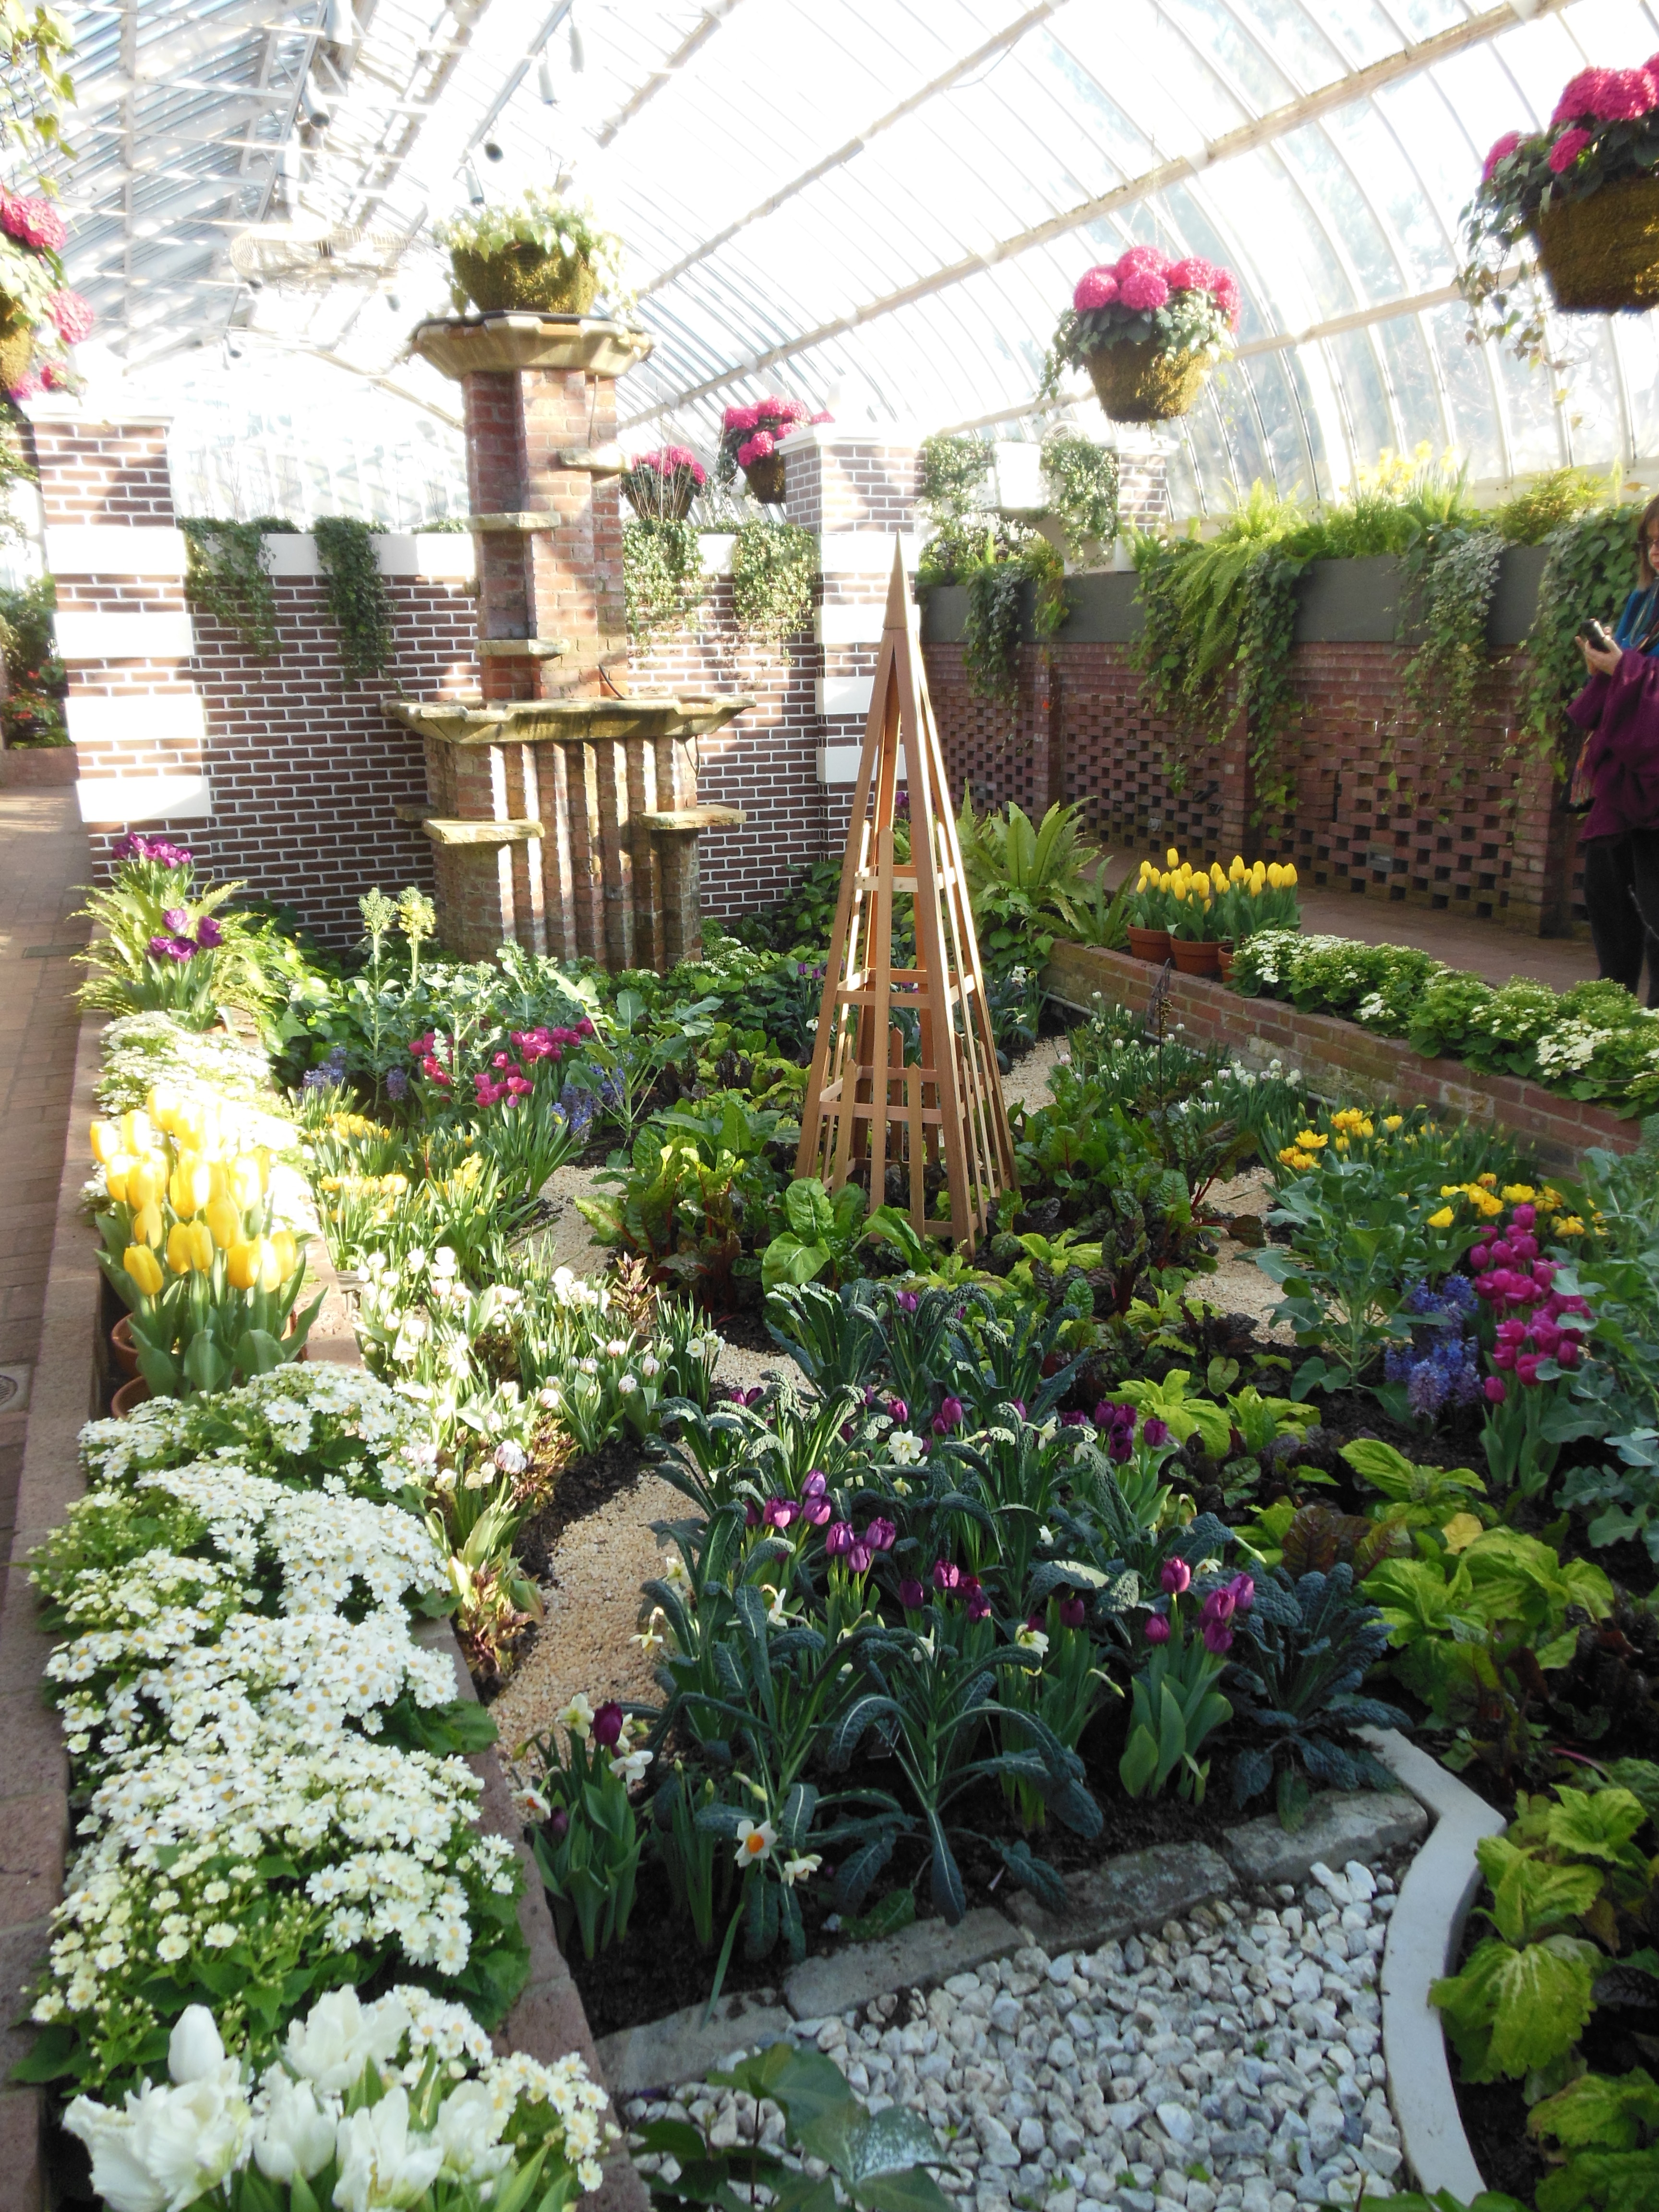 The Secret Garden Spring Flower Show At Phipps Conservatory Was So